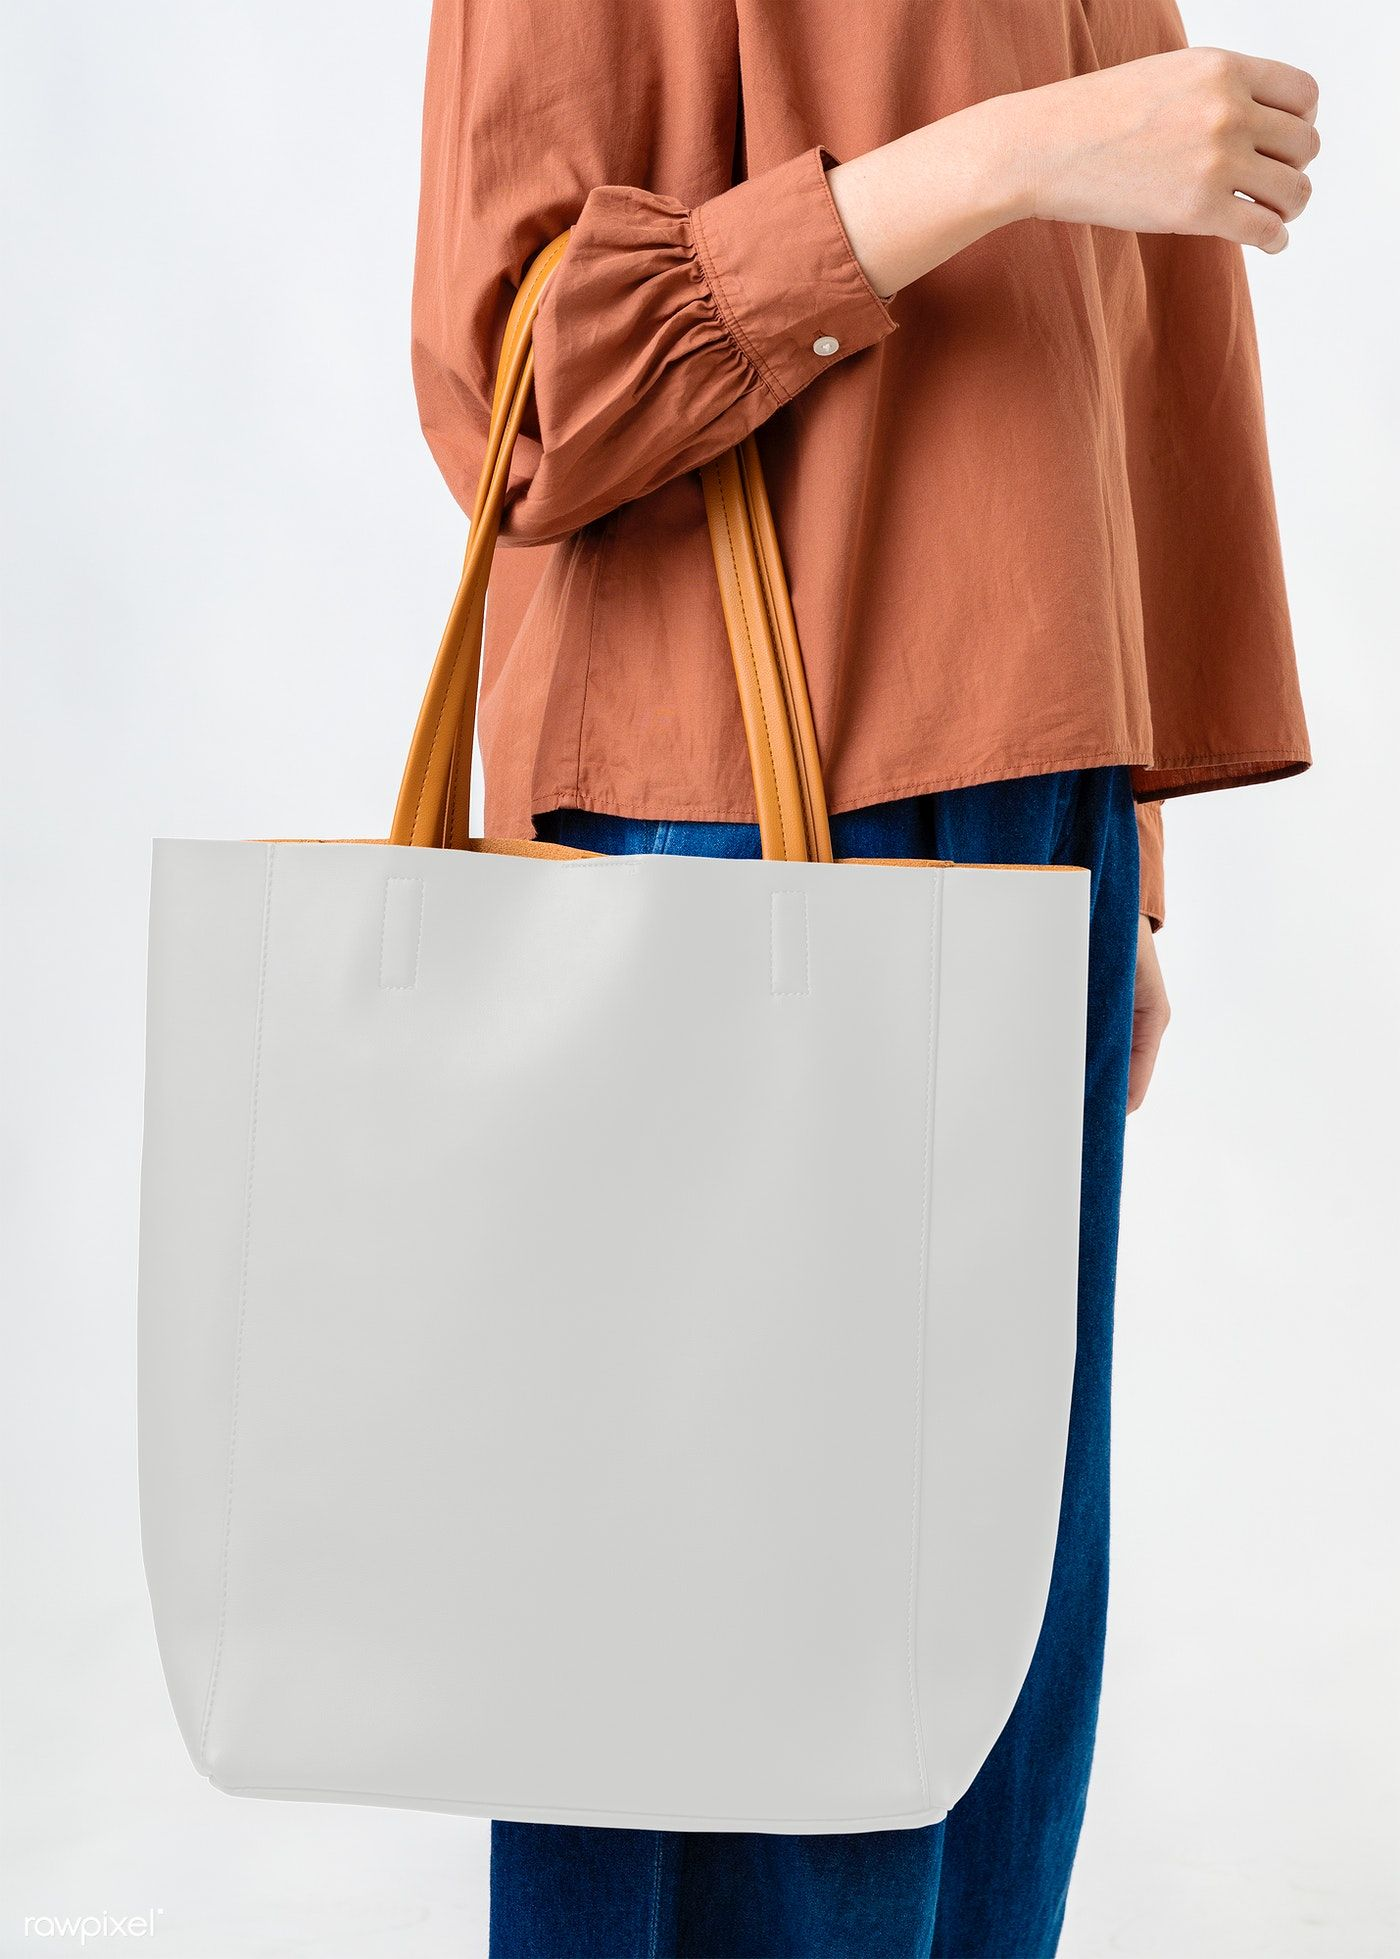 Woman With A Tote Bag Transparent Png Premium Image By Rawpixel Com Mckinsey Tote Bag Bags Woven Tote Bag